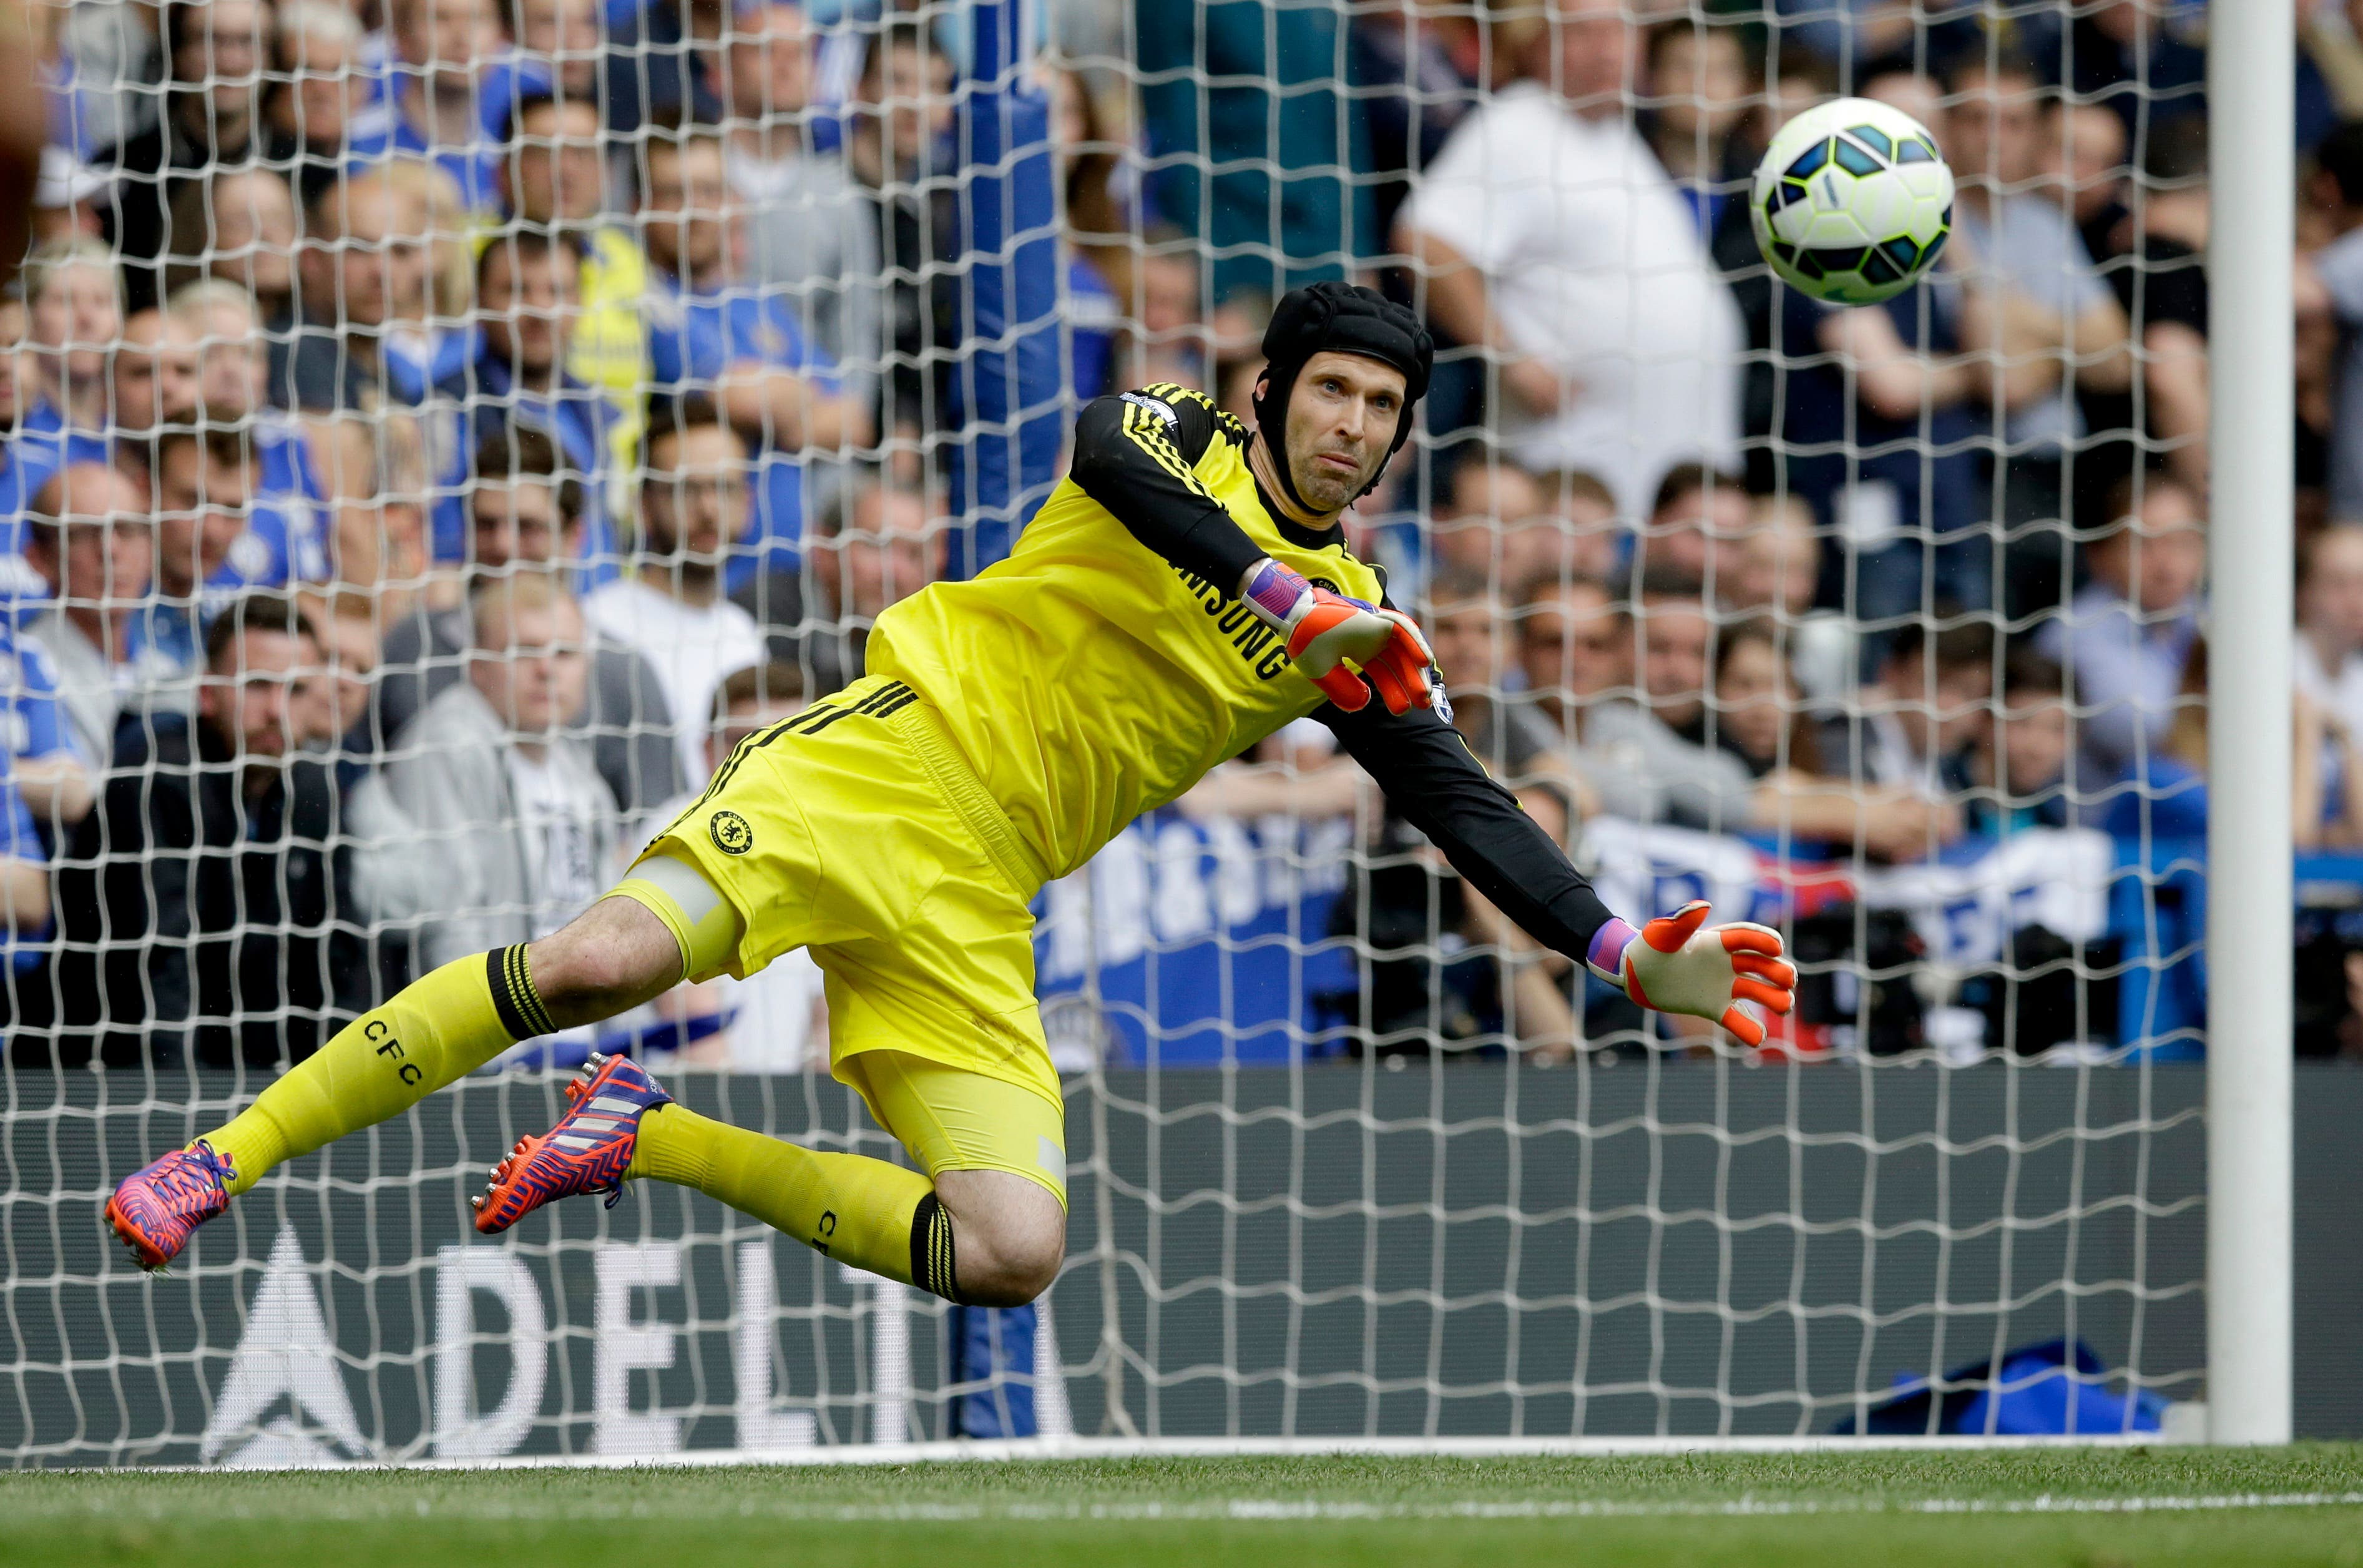 Chelsea's goalkeeper Petr Cech makes a save during the English Premier League soccer match between Chelsea and Sunderland at Stamford Bridge stadium in London, Sunday, May 24, 2015. (AP Photo/Matt Dunham)